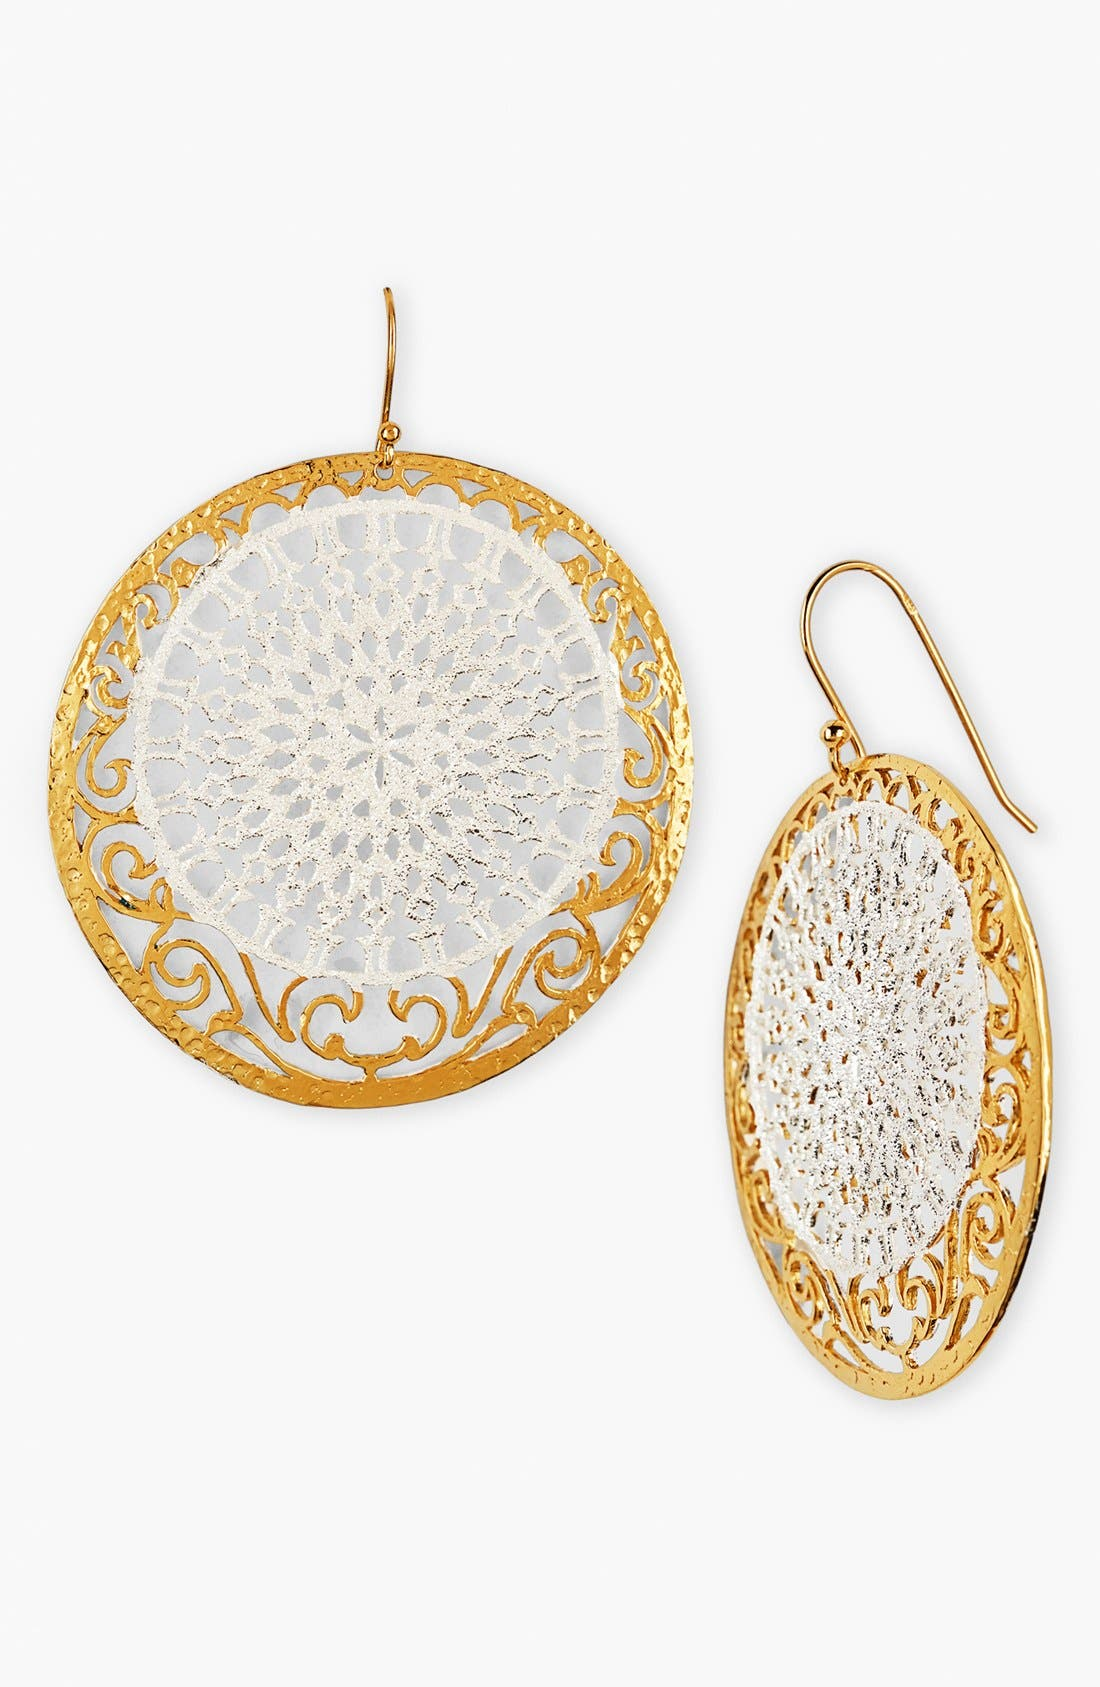 Alternate Image 1 Selected - Argento Vivo 'Glitter' Small Drop Earrings